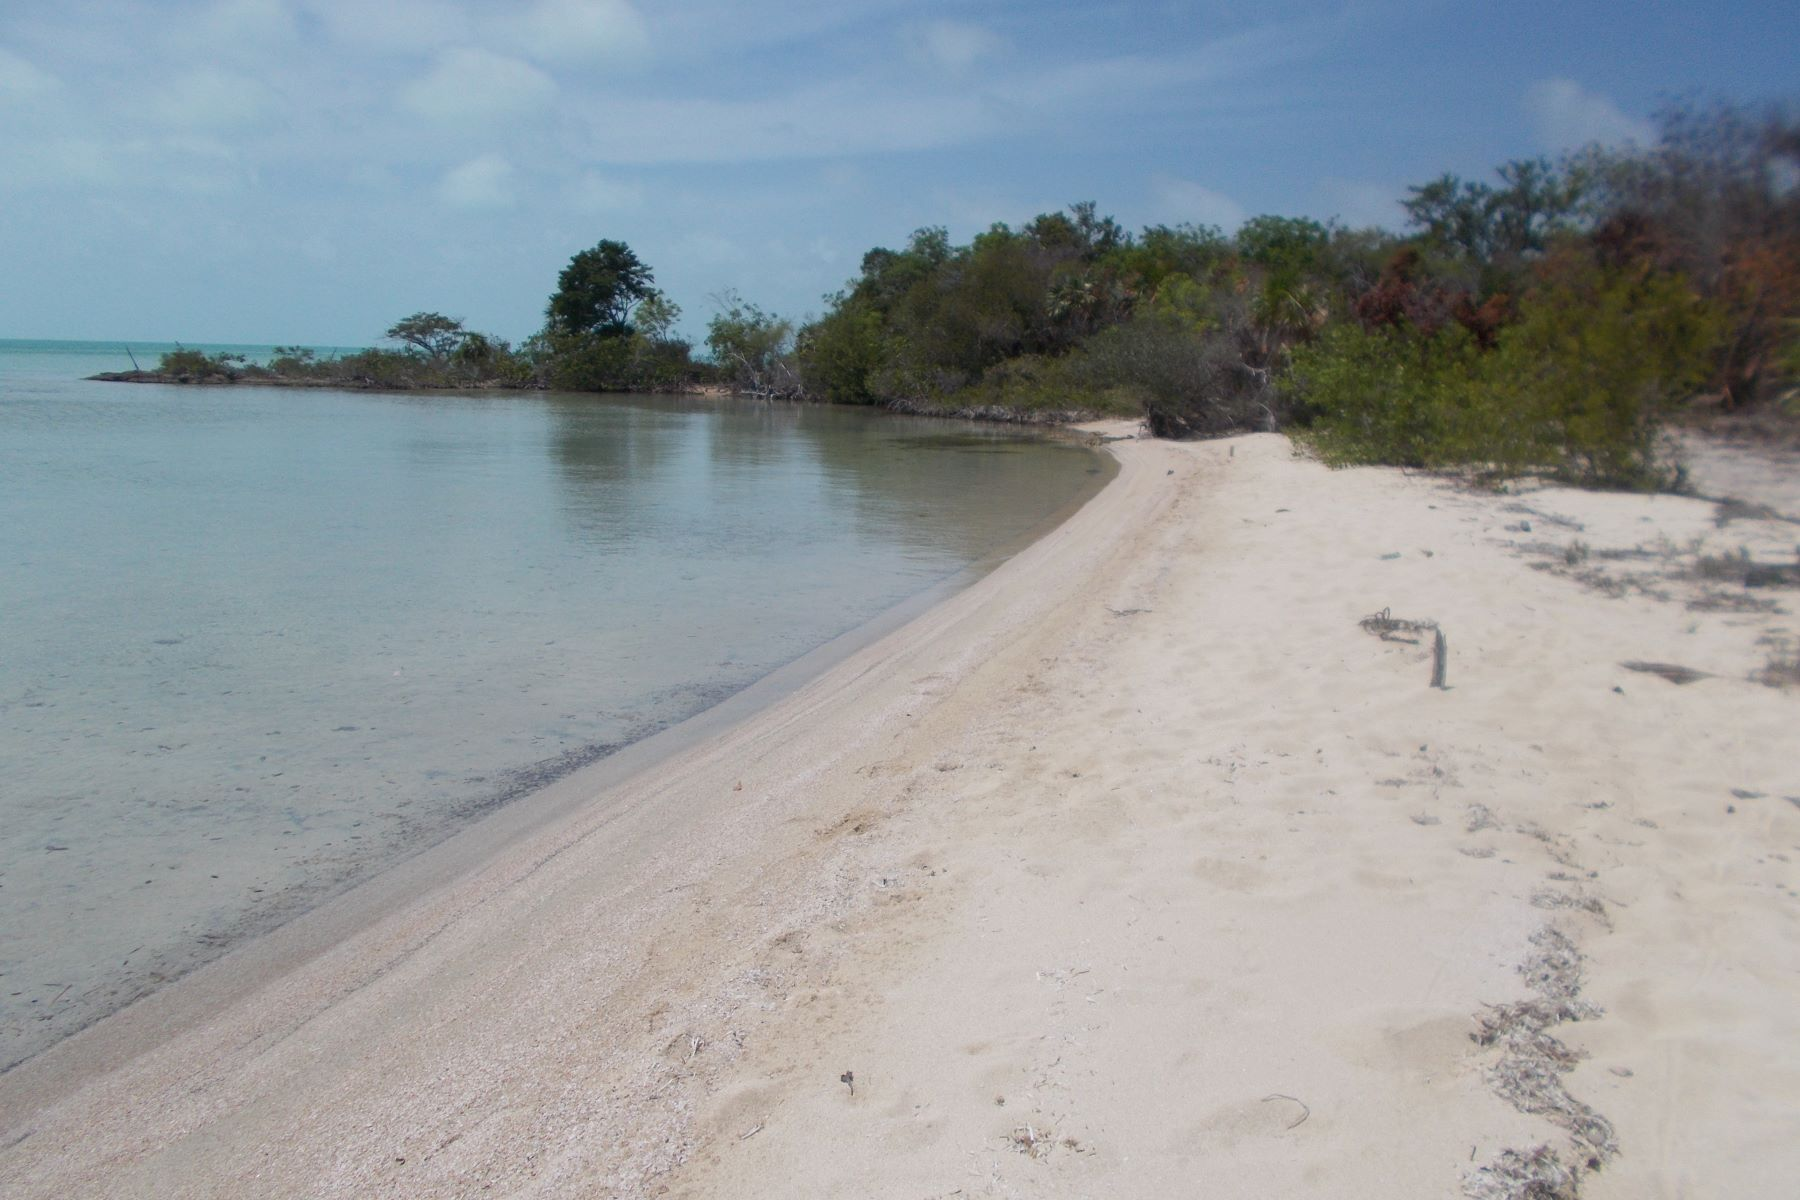 Land for Sale at Caribbean Coves Lot No. 32A San Pedro Town, Ambergris Caye, Belize